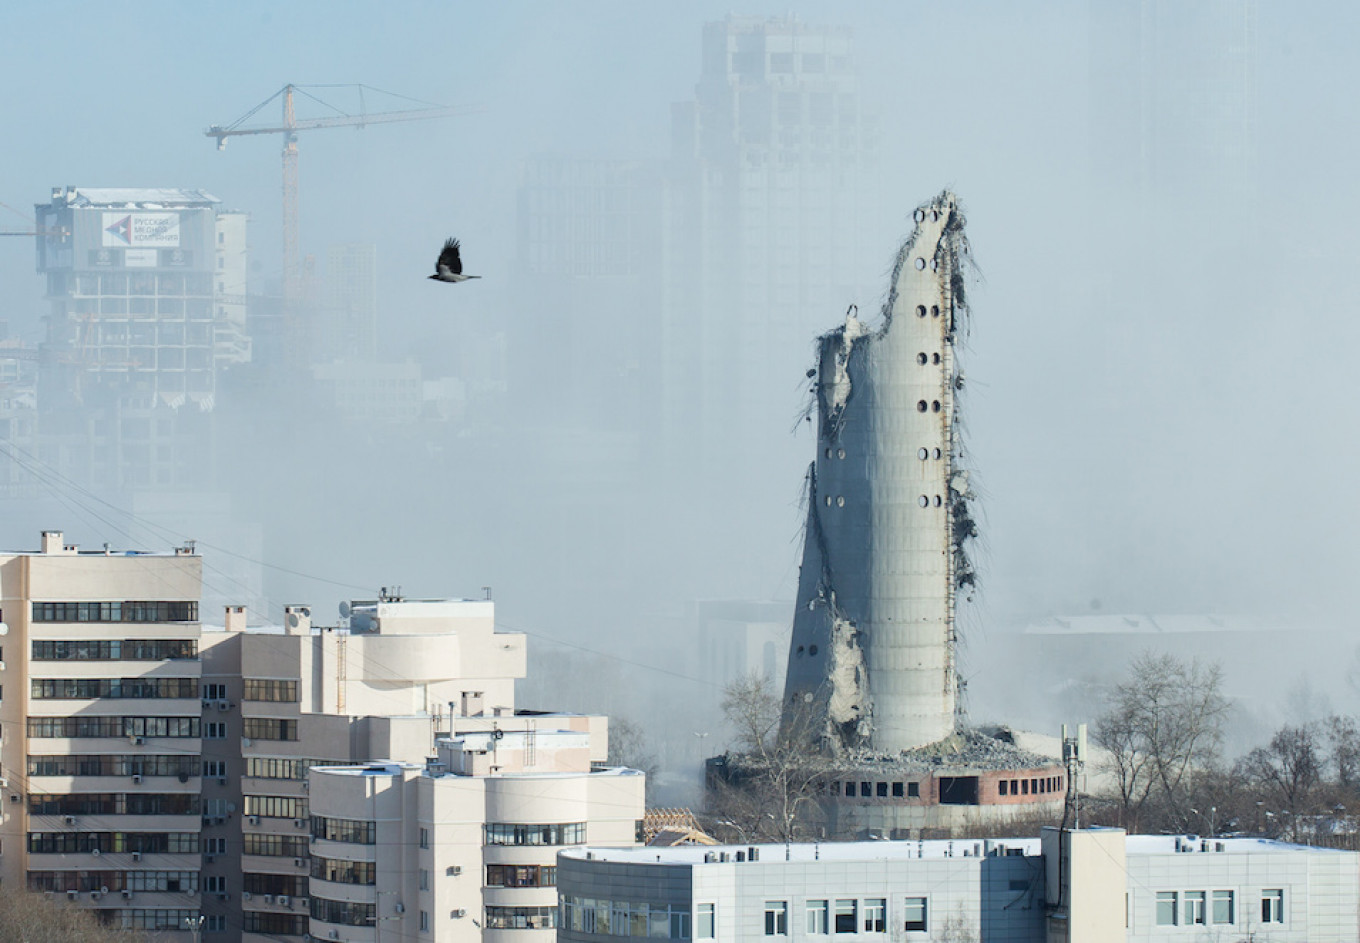 The unfinished and abandoned tower shortly after the demolition. Alexei Kolchin / Reuters